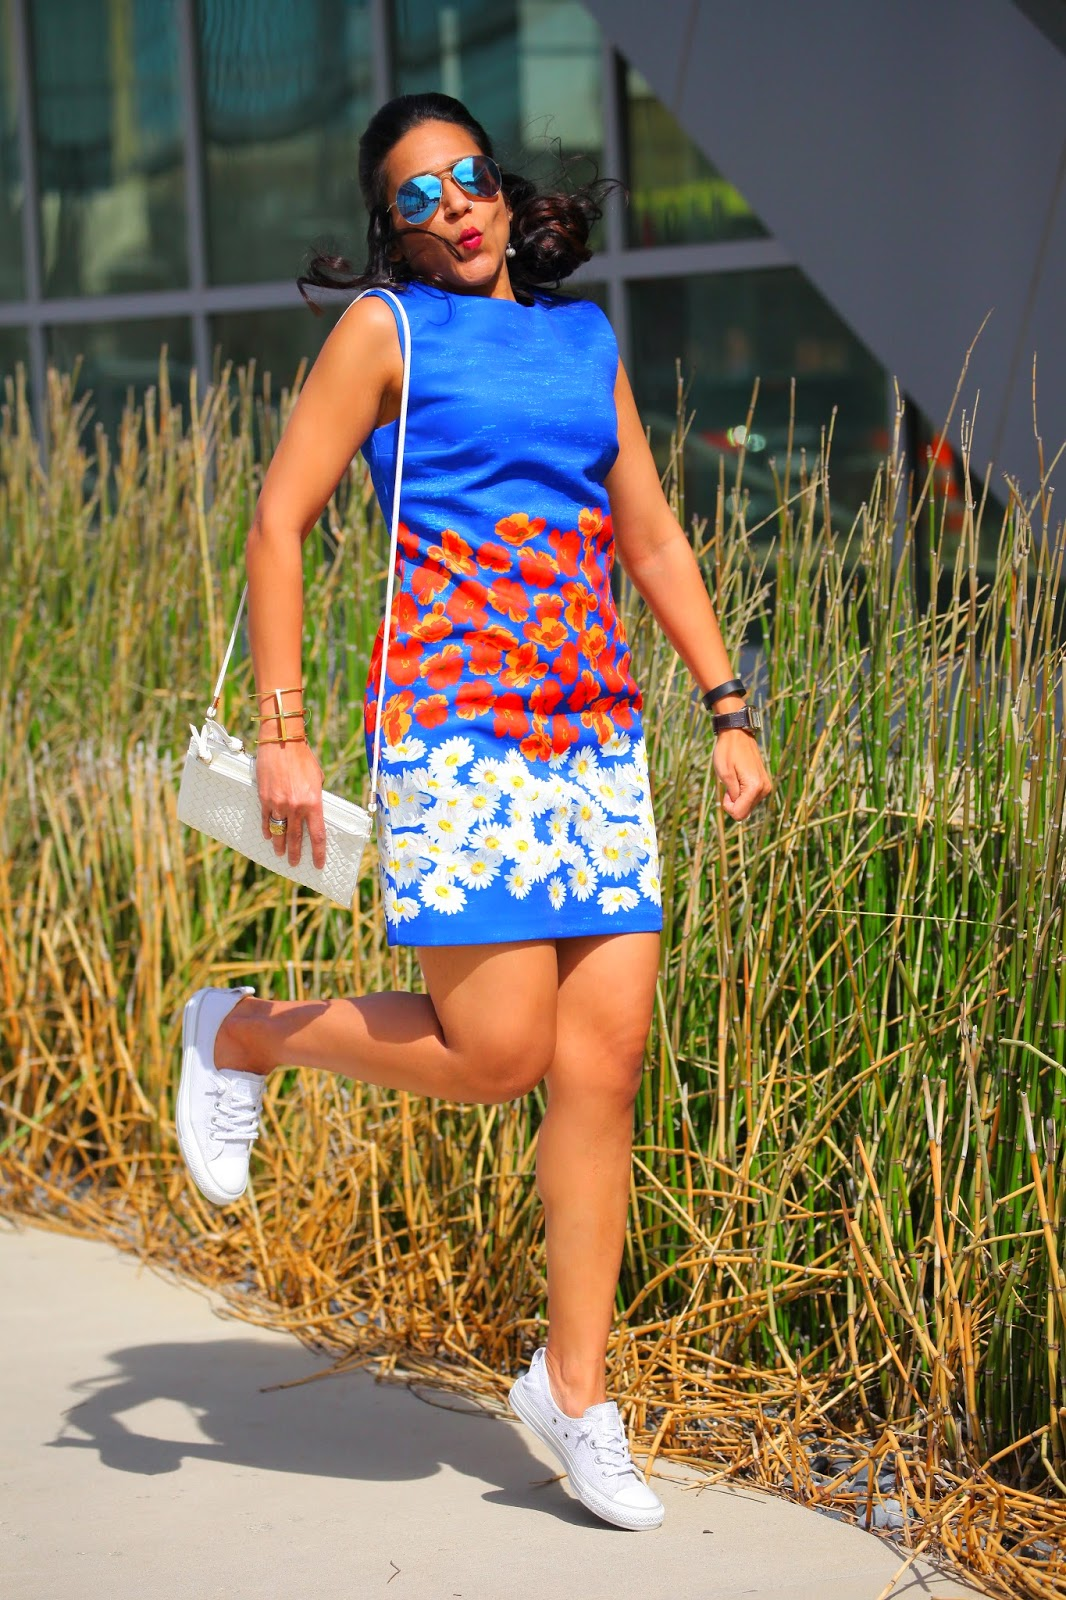 Dress - South Moon Under, Shoes - Converse, Bag - Rebecca Minkoff, Sunglasses - RayBan, Tanvii.com